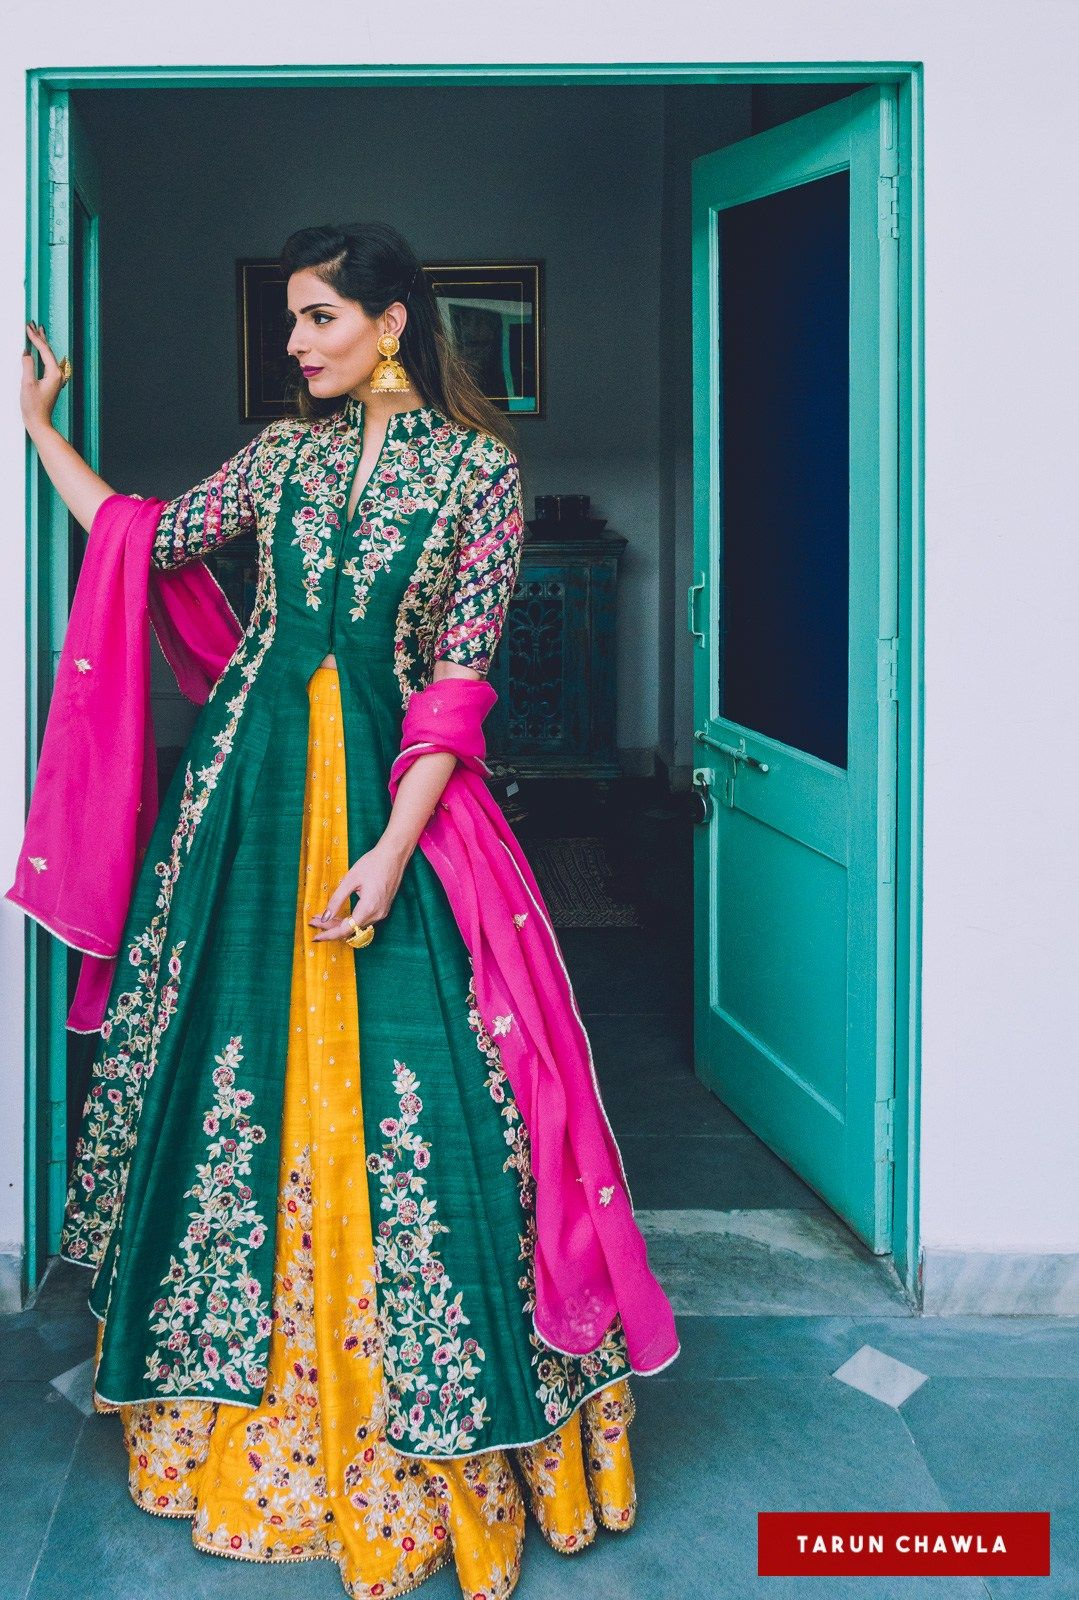 South asian wedding dresses  HeadTilt x Sue Mue  s  Pinterest  Indian wear Indian fashion and